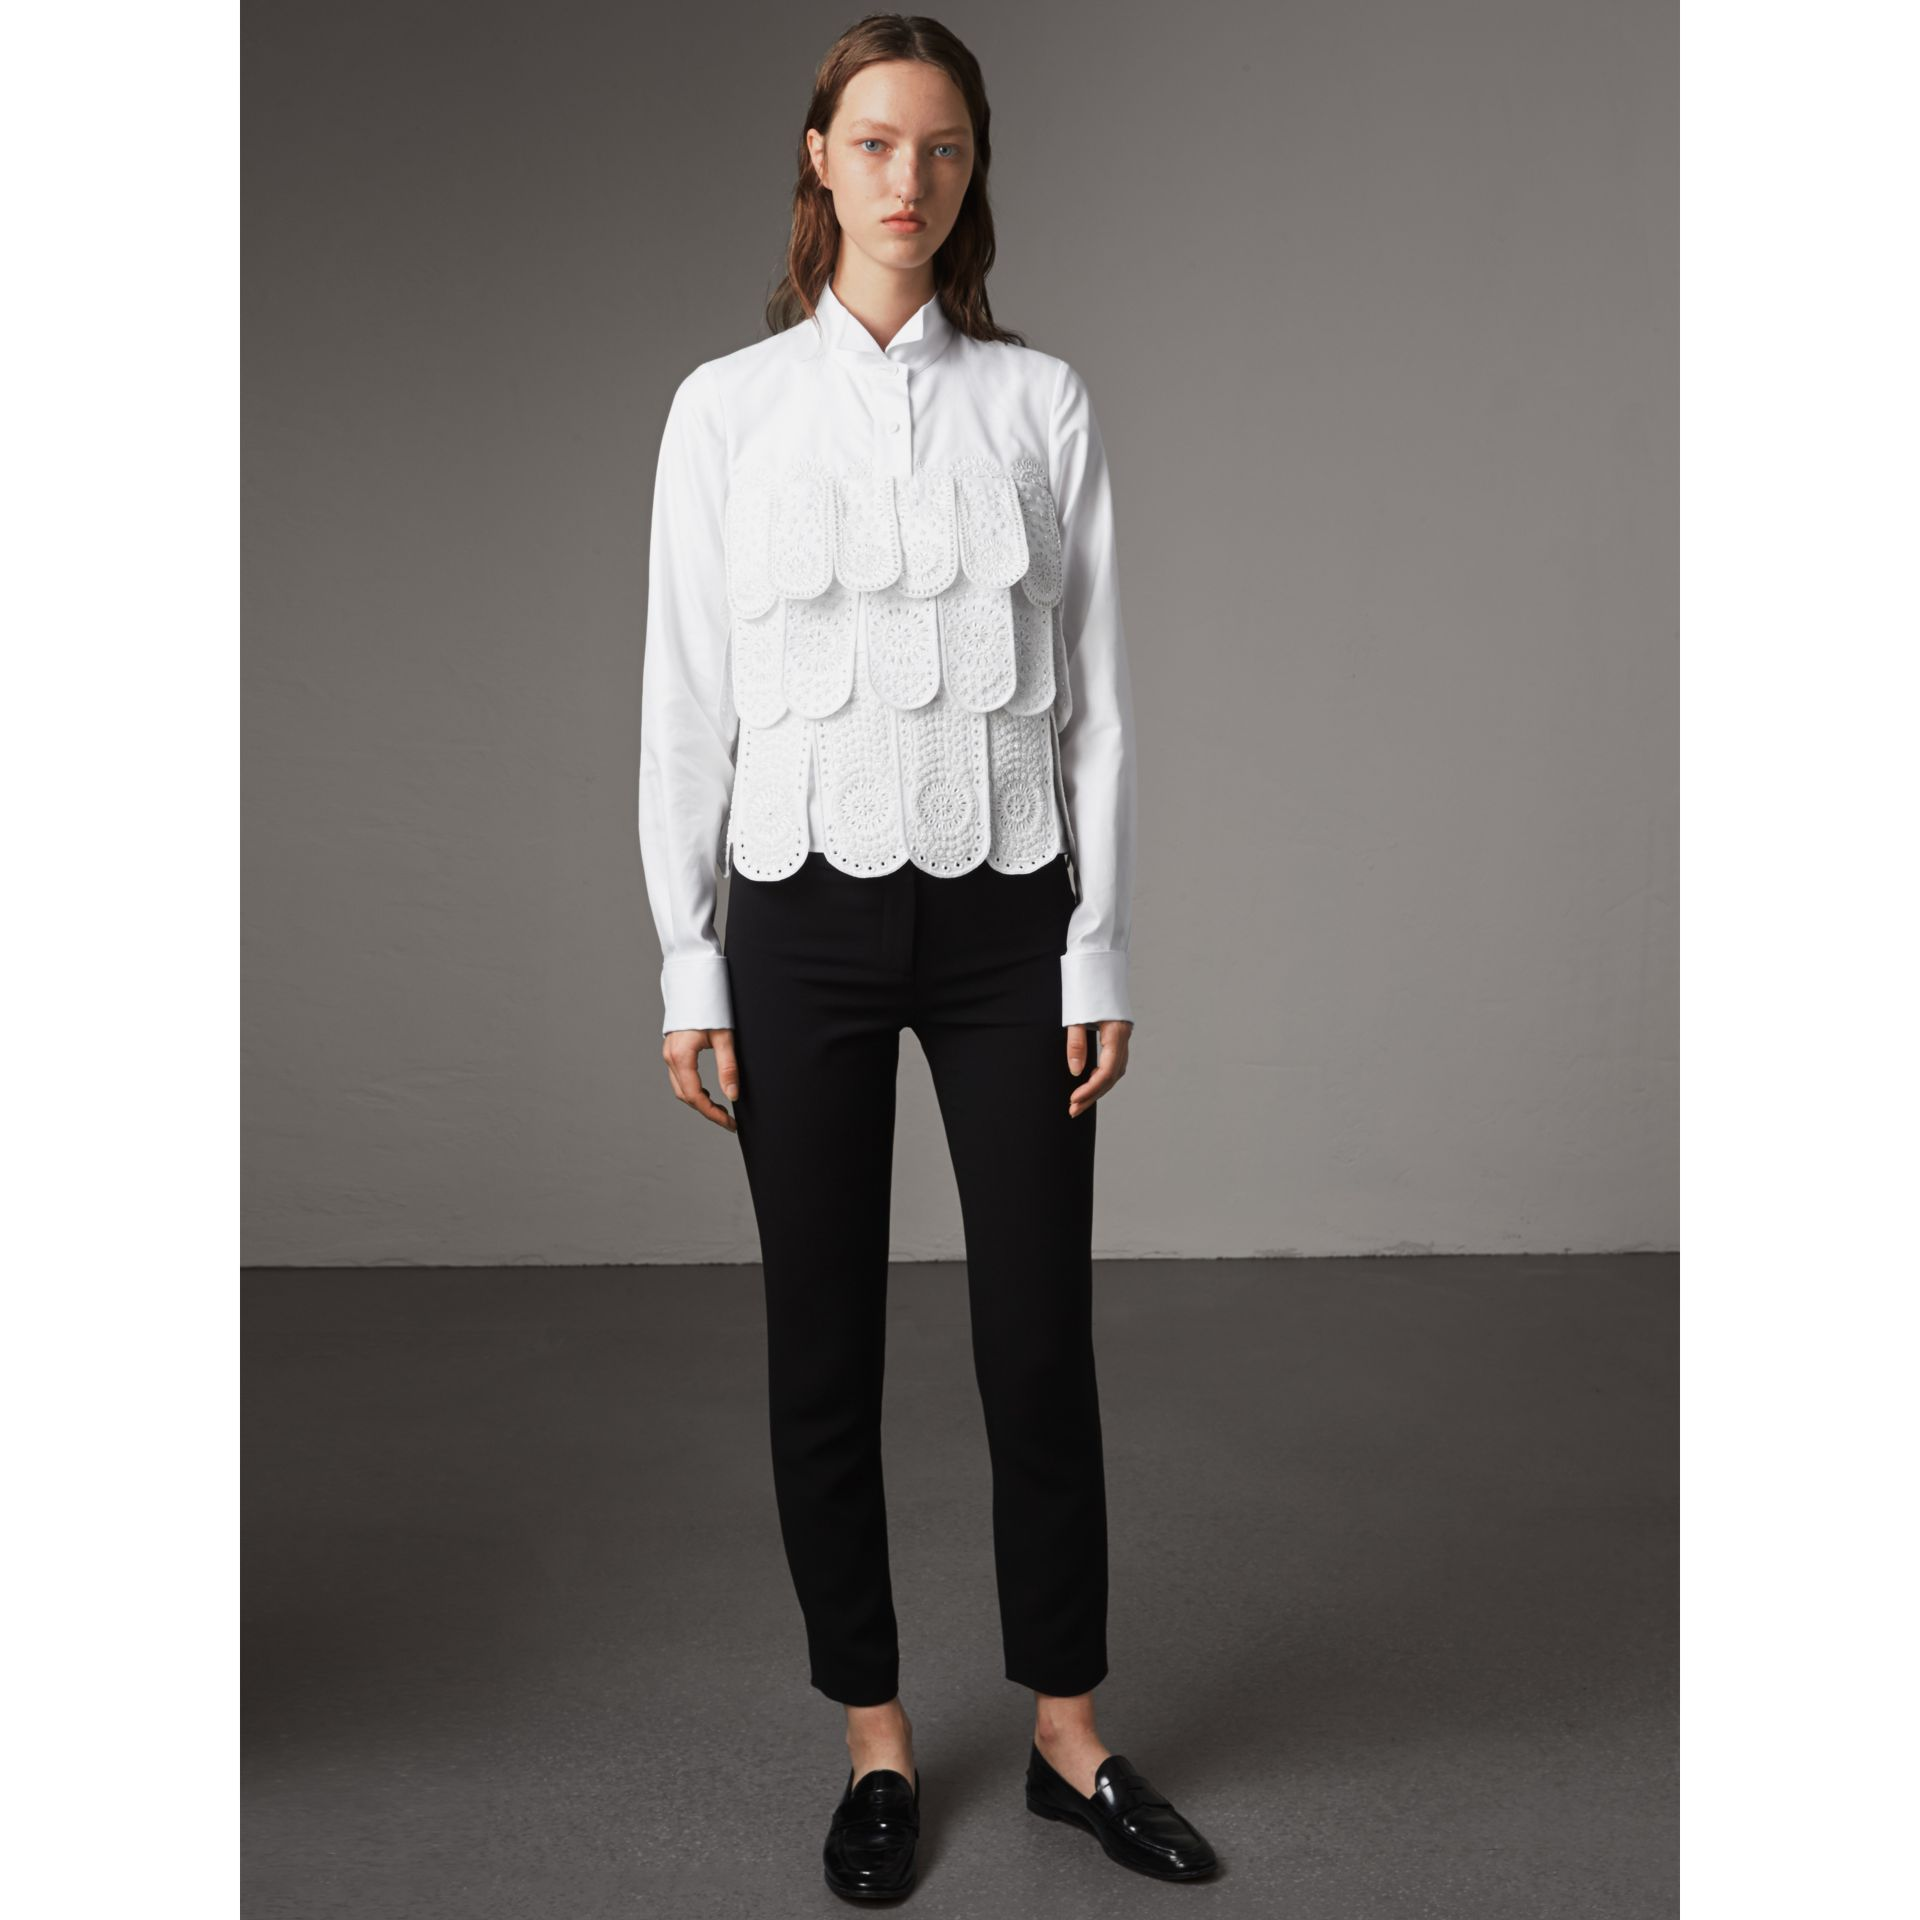 Scalloped Tier Embellished Cotton Shirt in White - Women | Burberry - gallery image 6